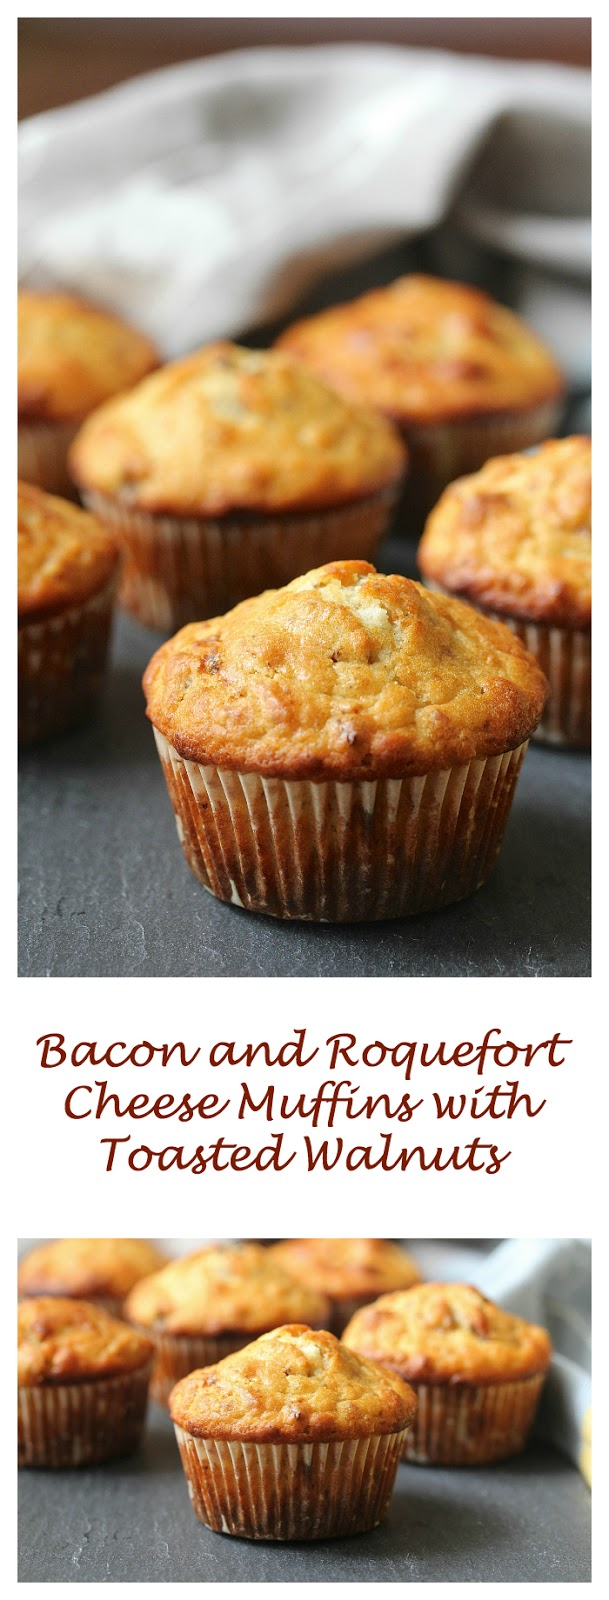 Bacon and Roquefort Cheese Muffins with Toasted Walnuts